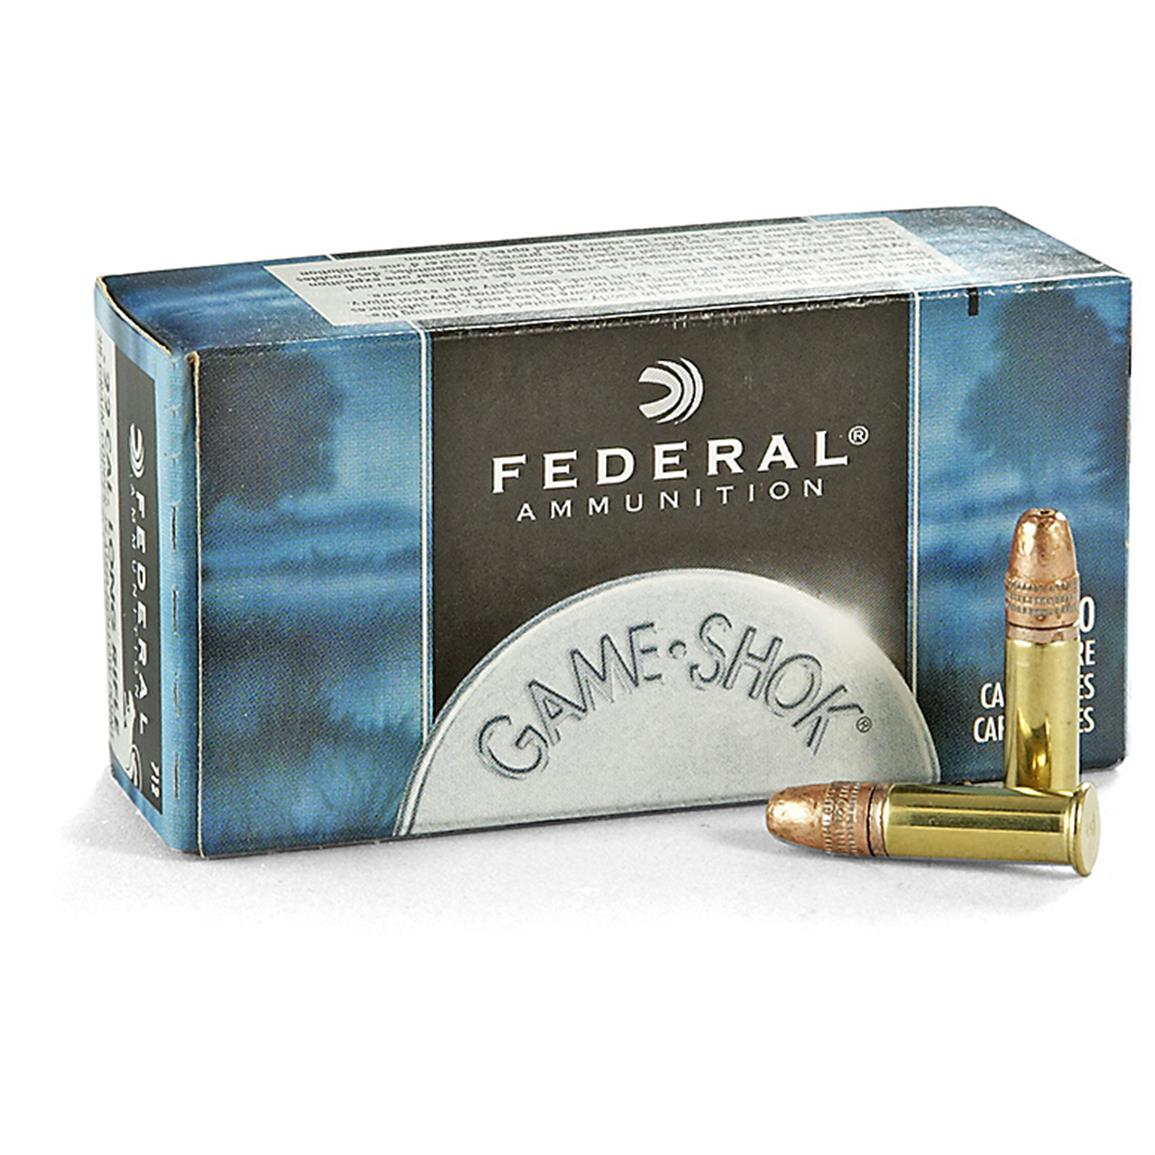 Federal Game-Shok High Velocity Ammo, .22LR, 38 Grain Copper-plated Hollow Point, 50 Rounds